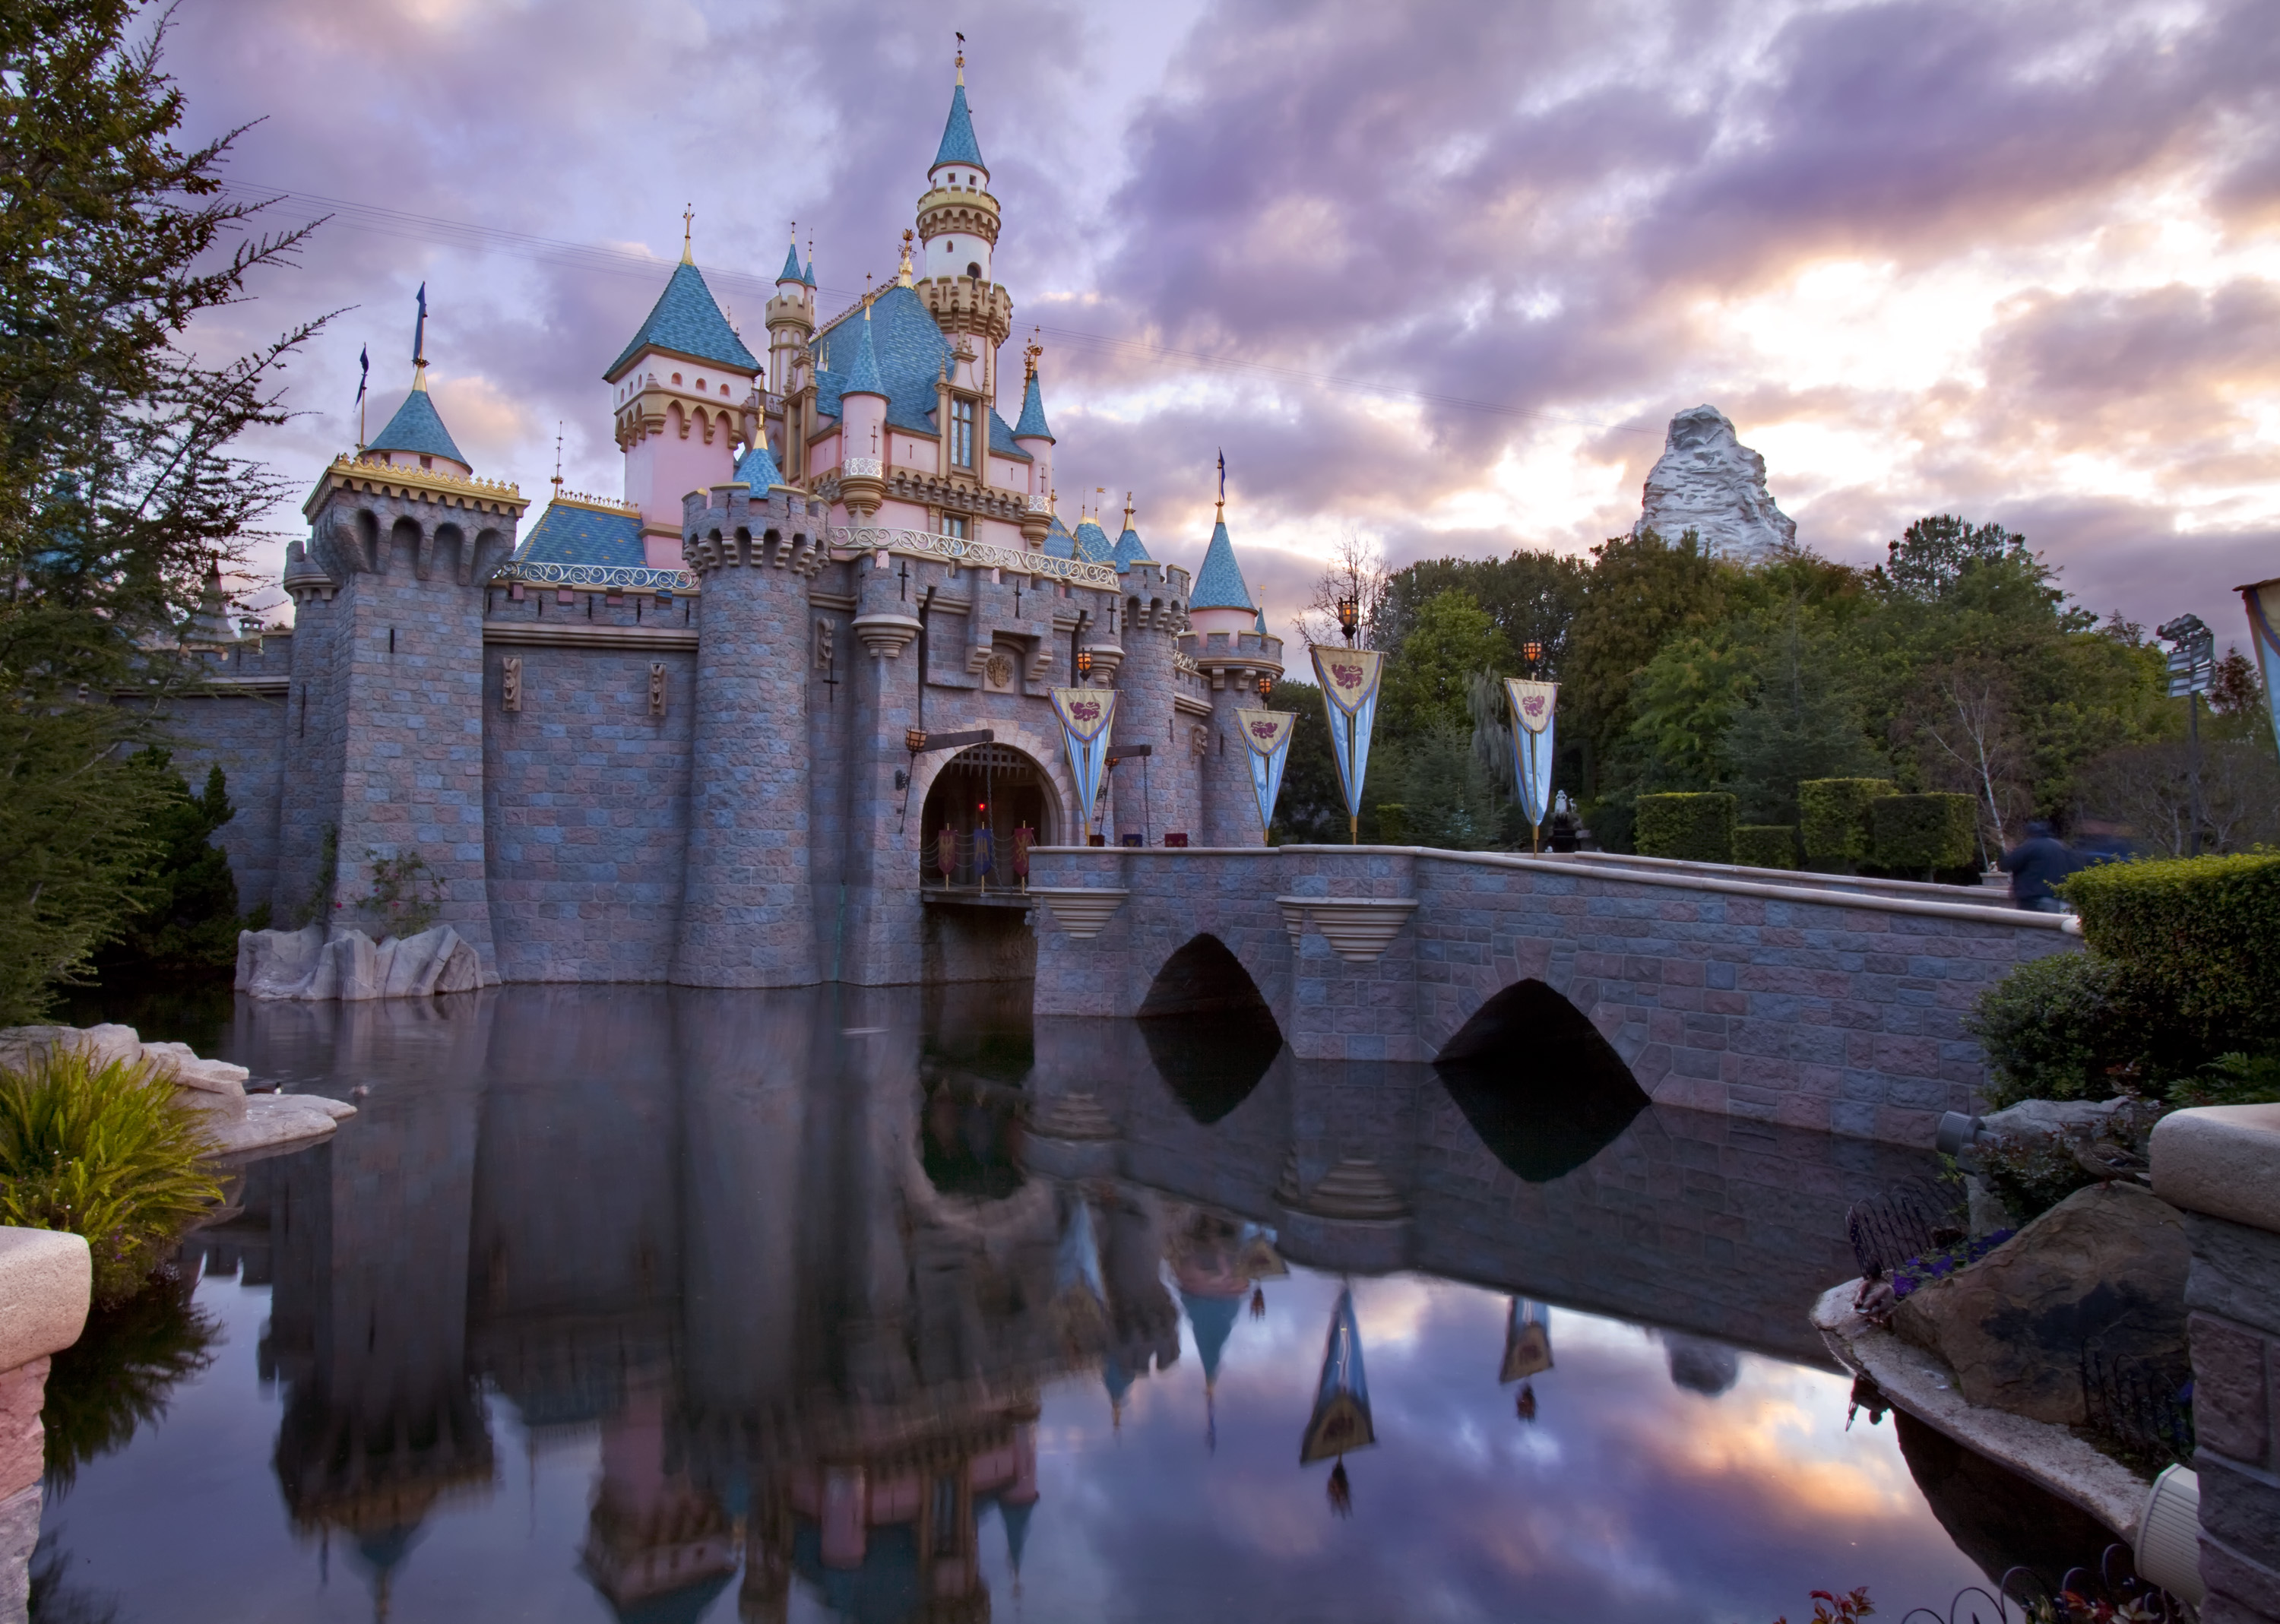 Instagram's Most Photographed Place on Earth is Disneyland!